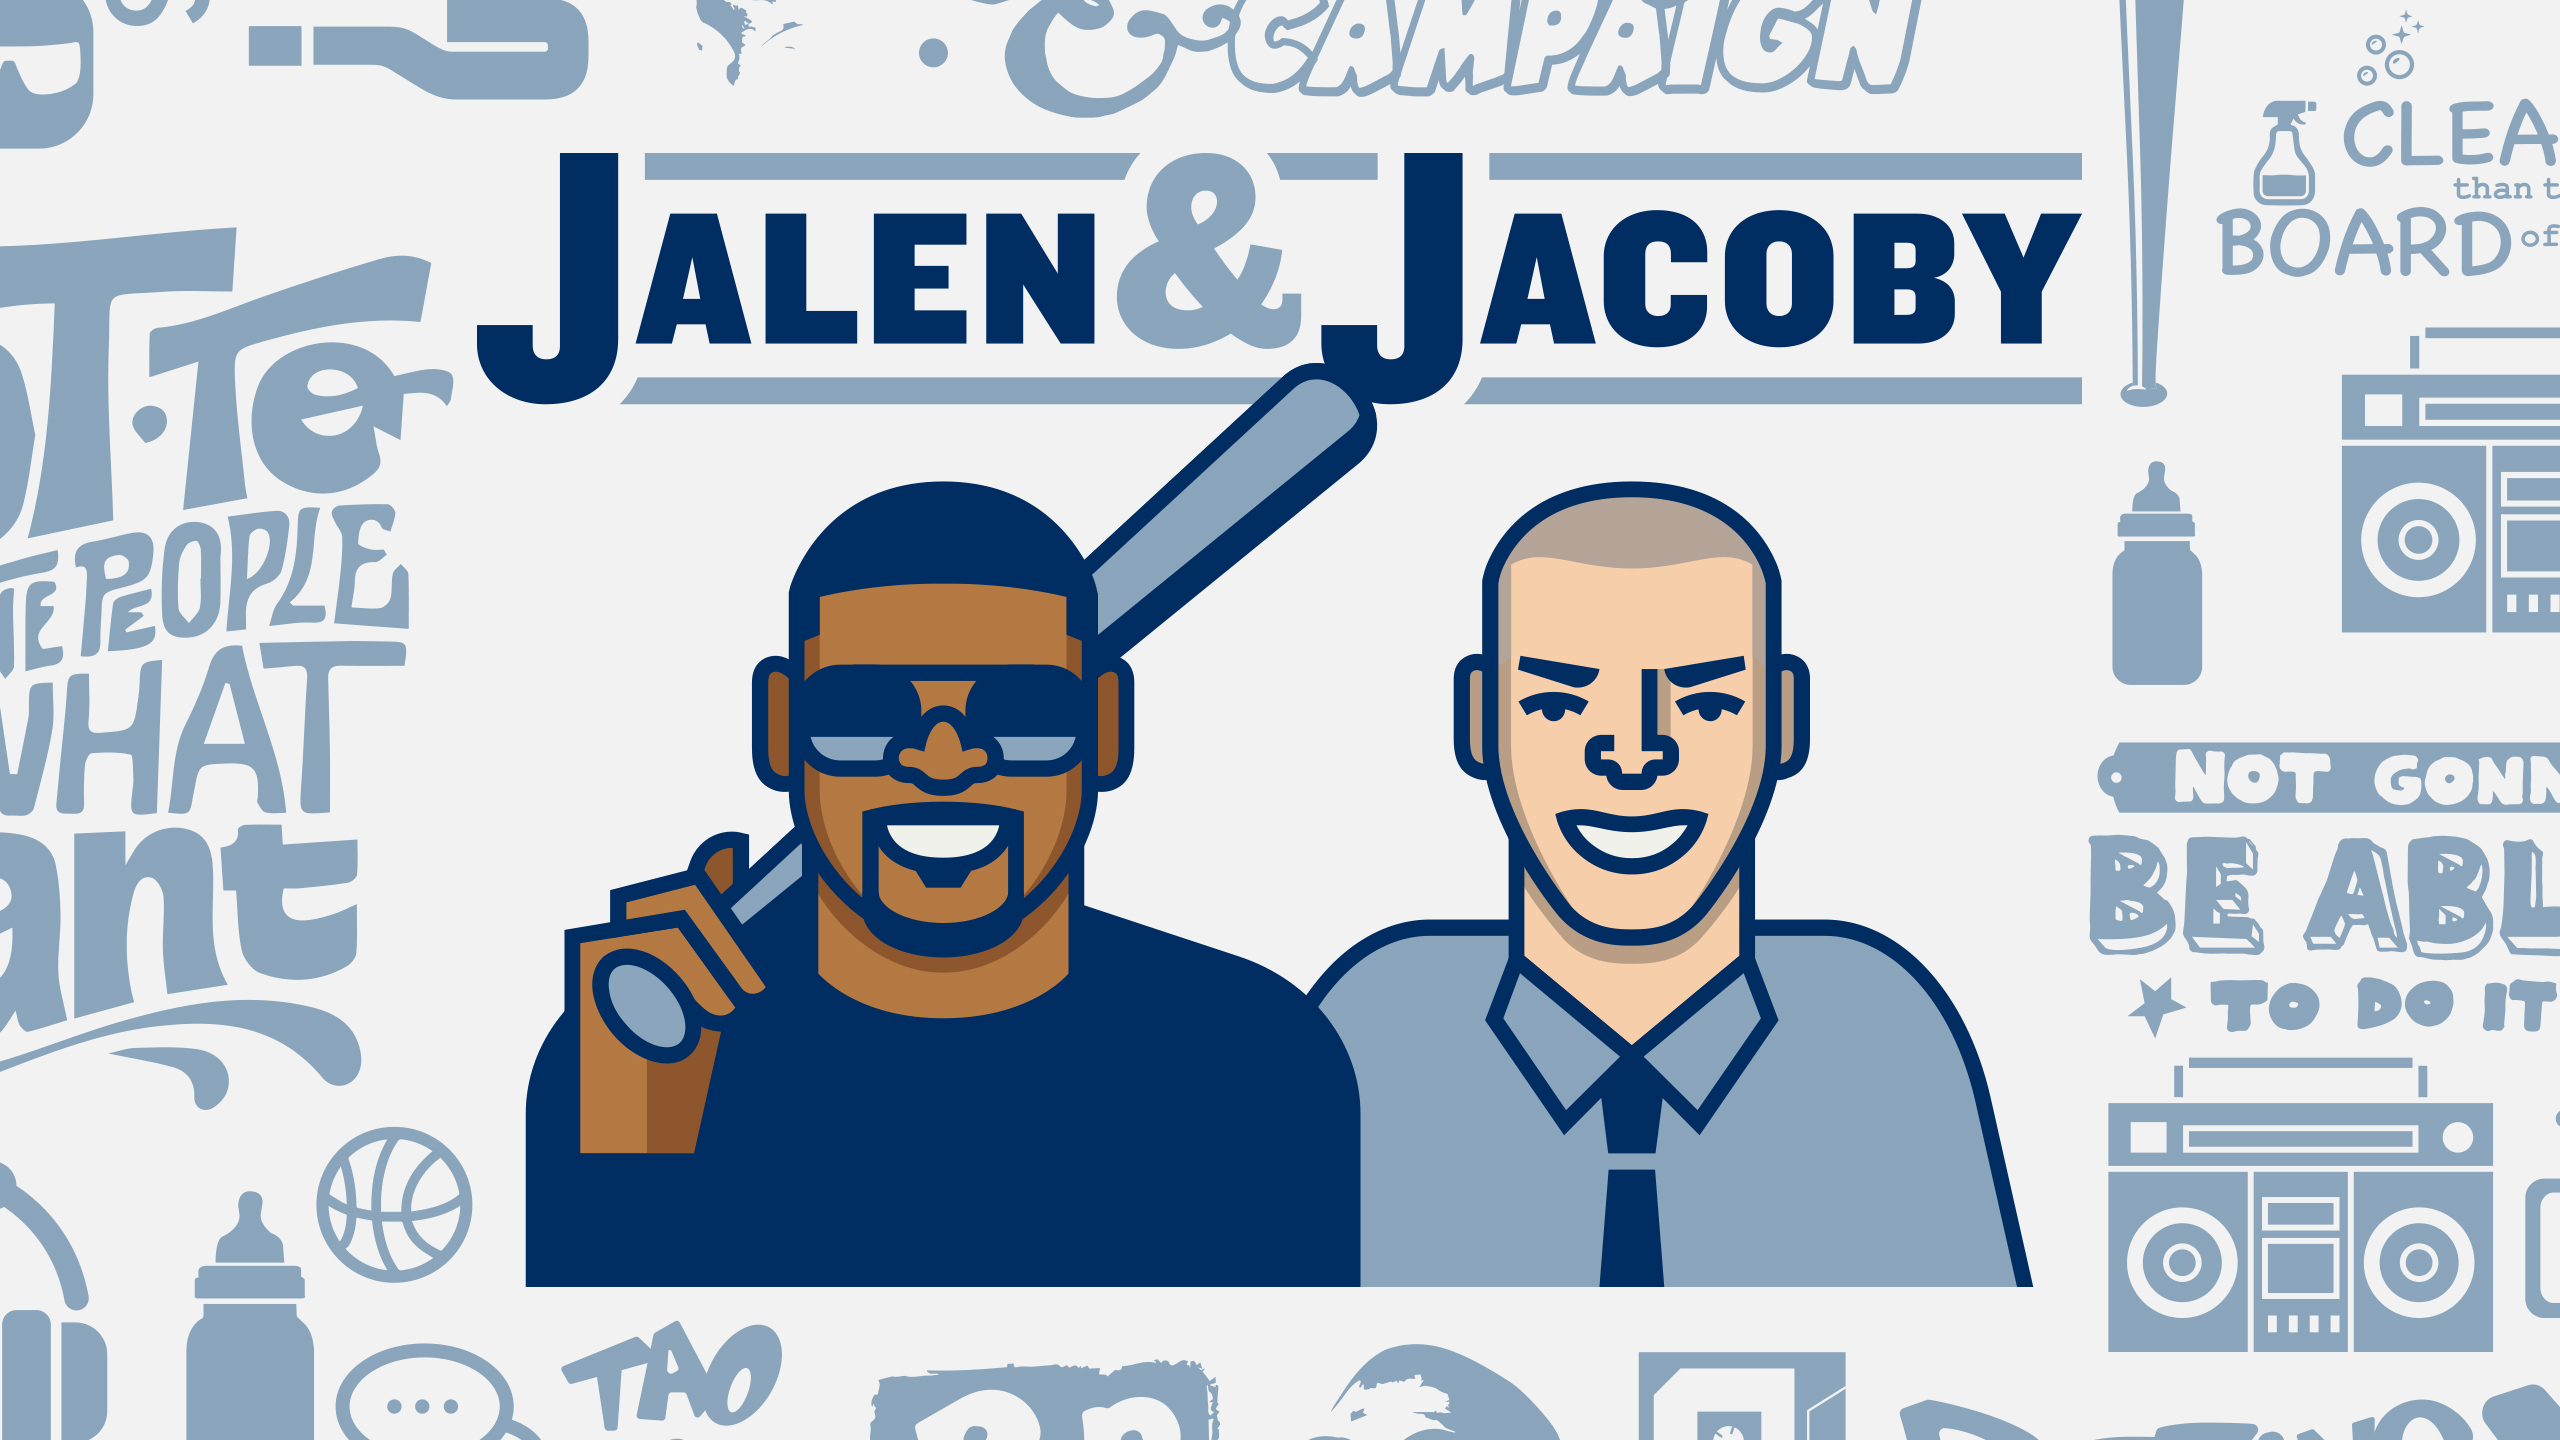 Tue, 3/26 - Jalen & Jacoby